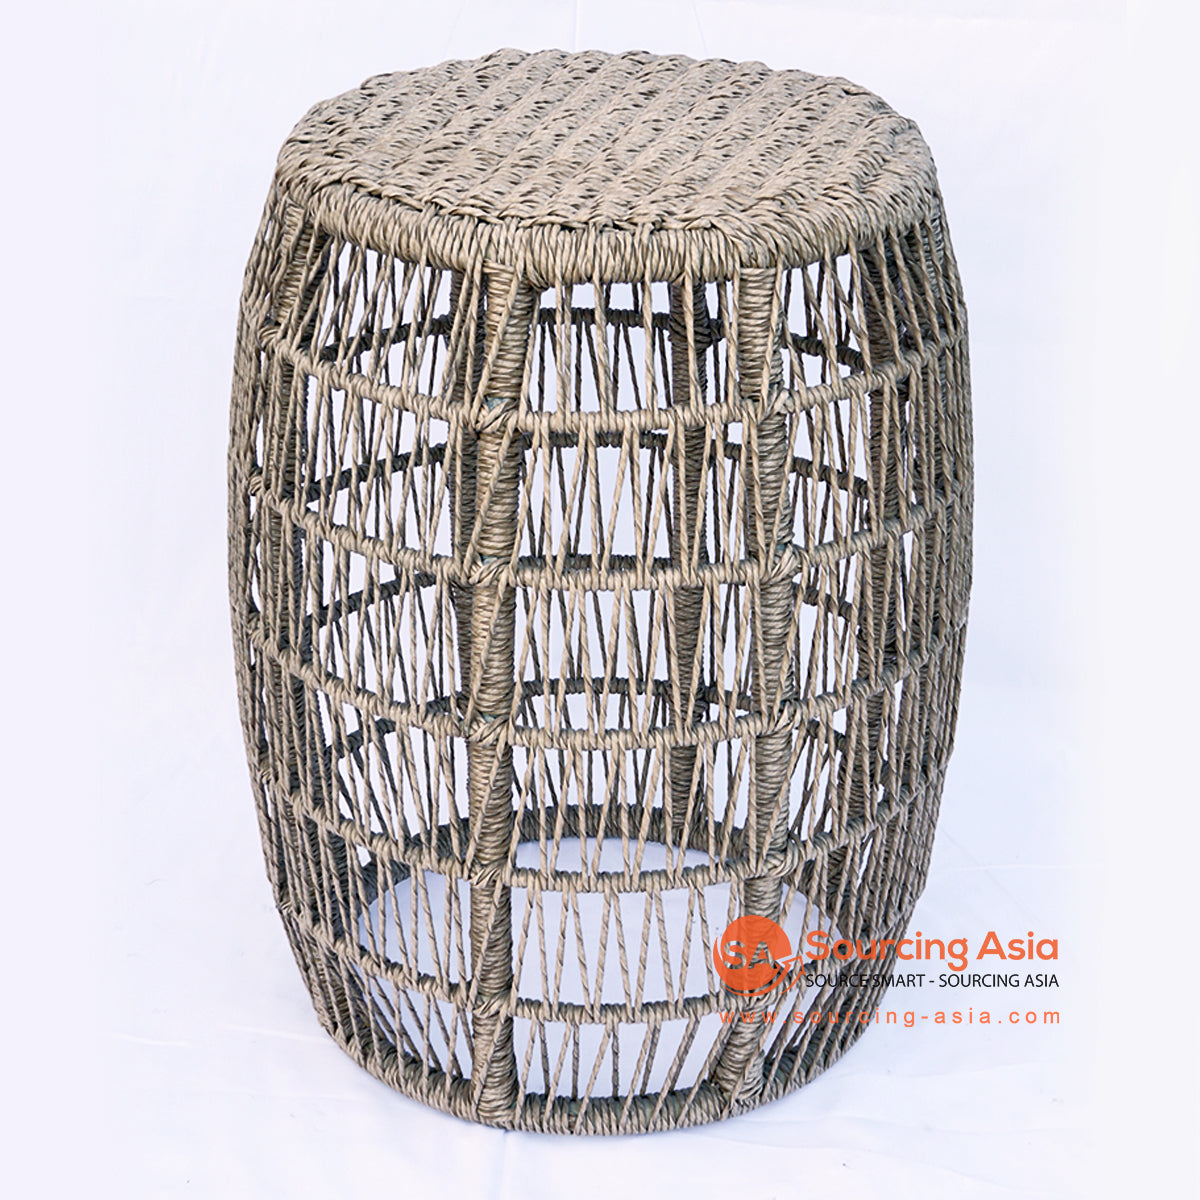 BNTC006-1 SYNTHETIC RATTAN SIDE TABLE